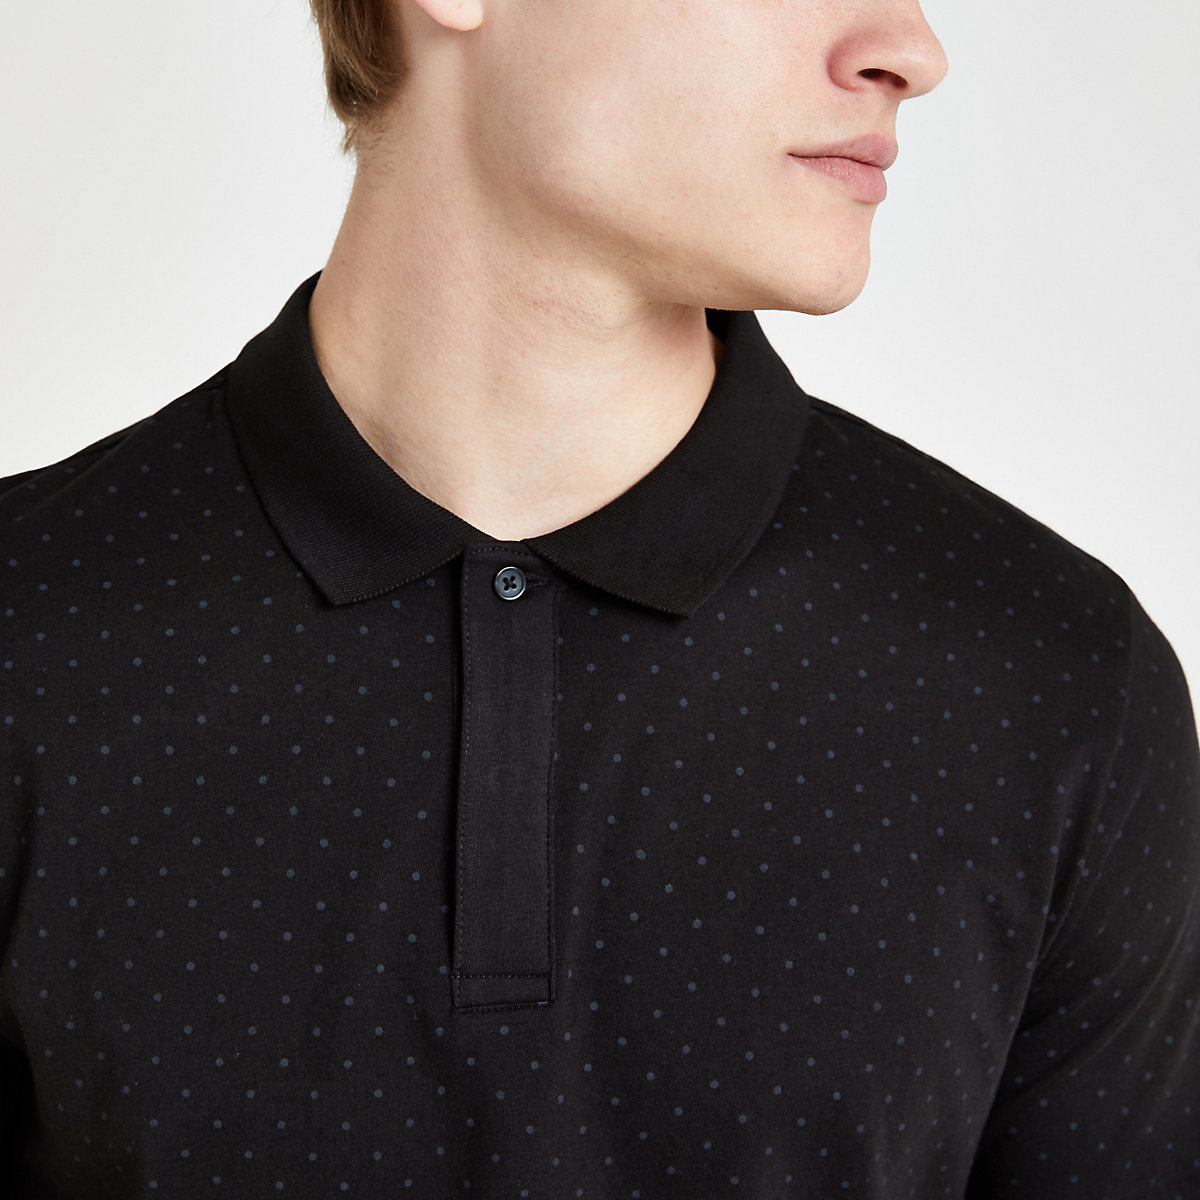 Jack and Jones black spot polo shirt